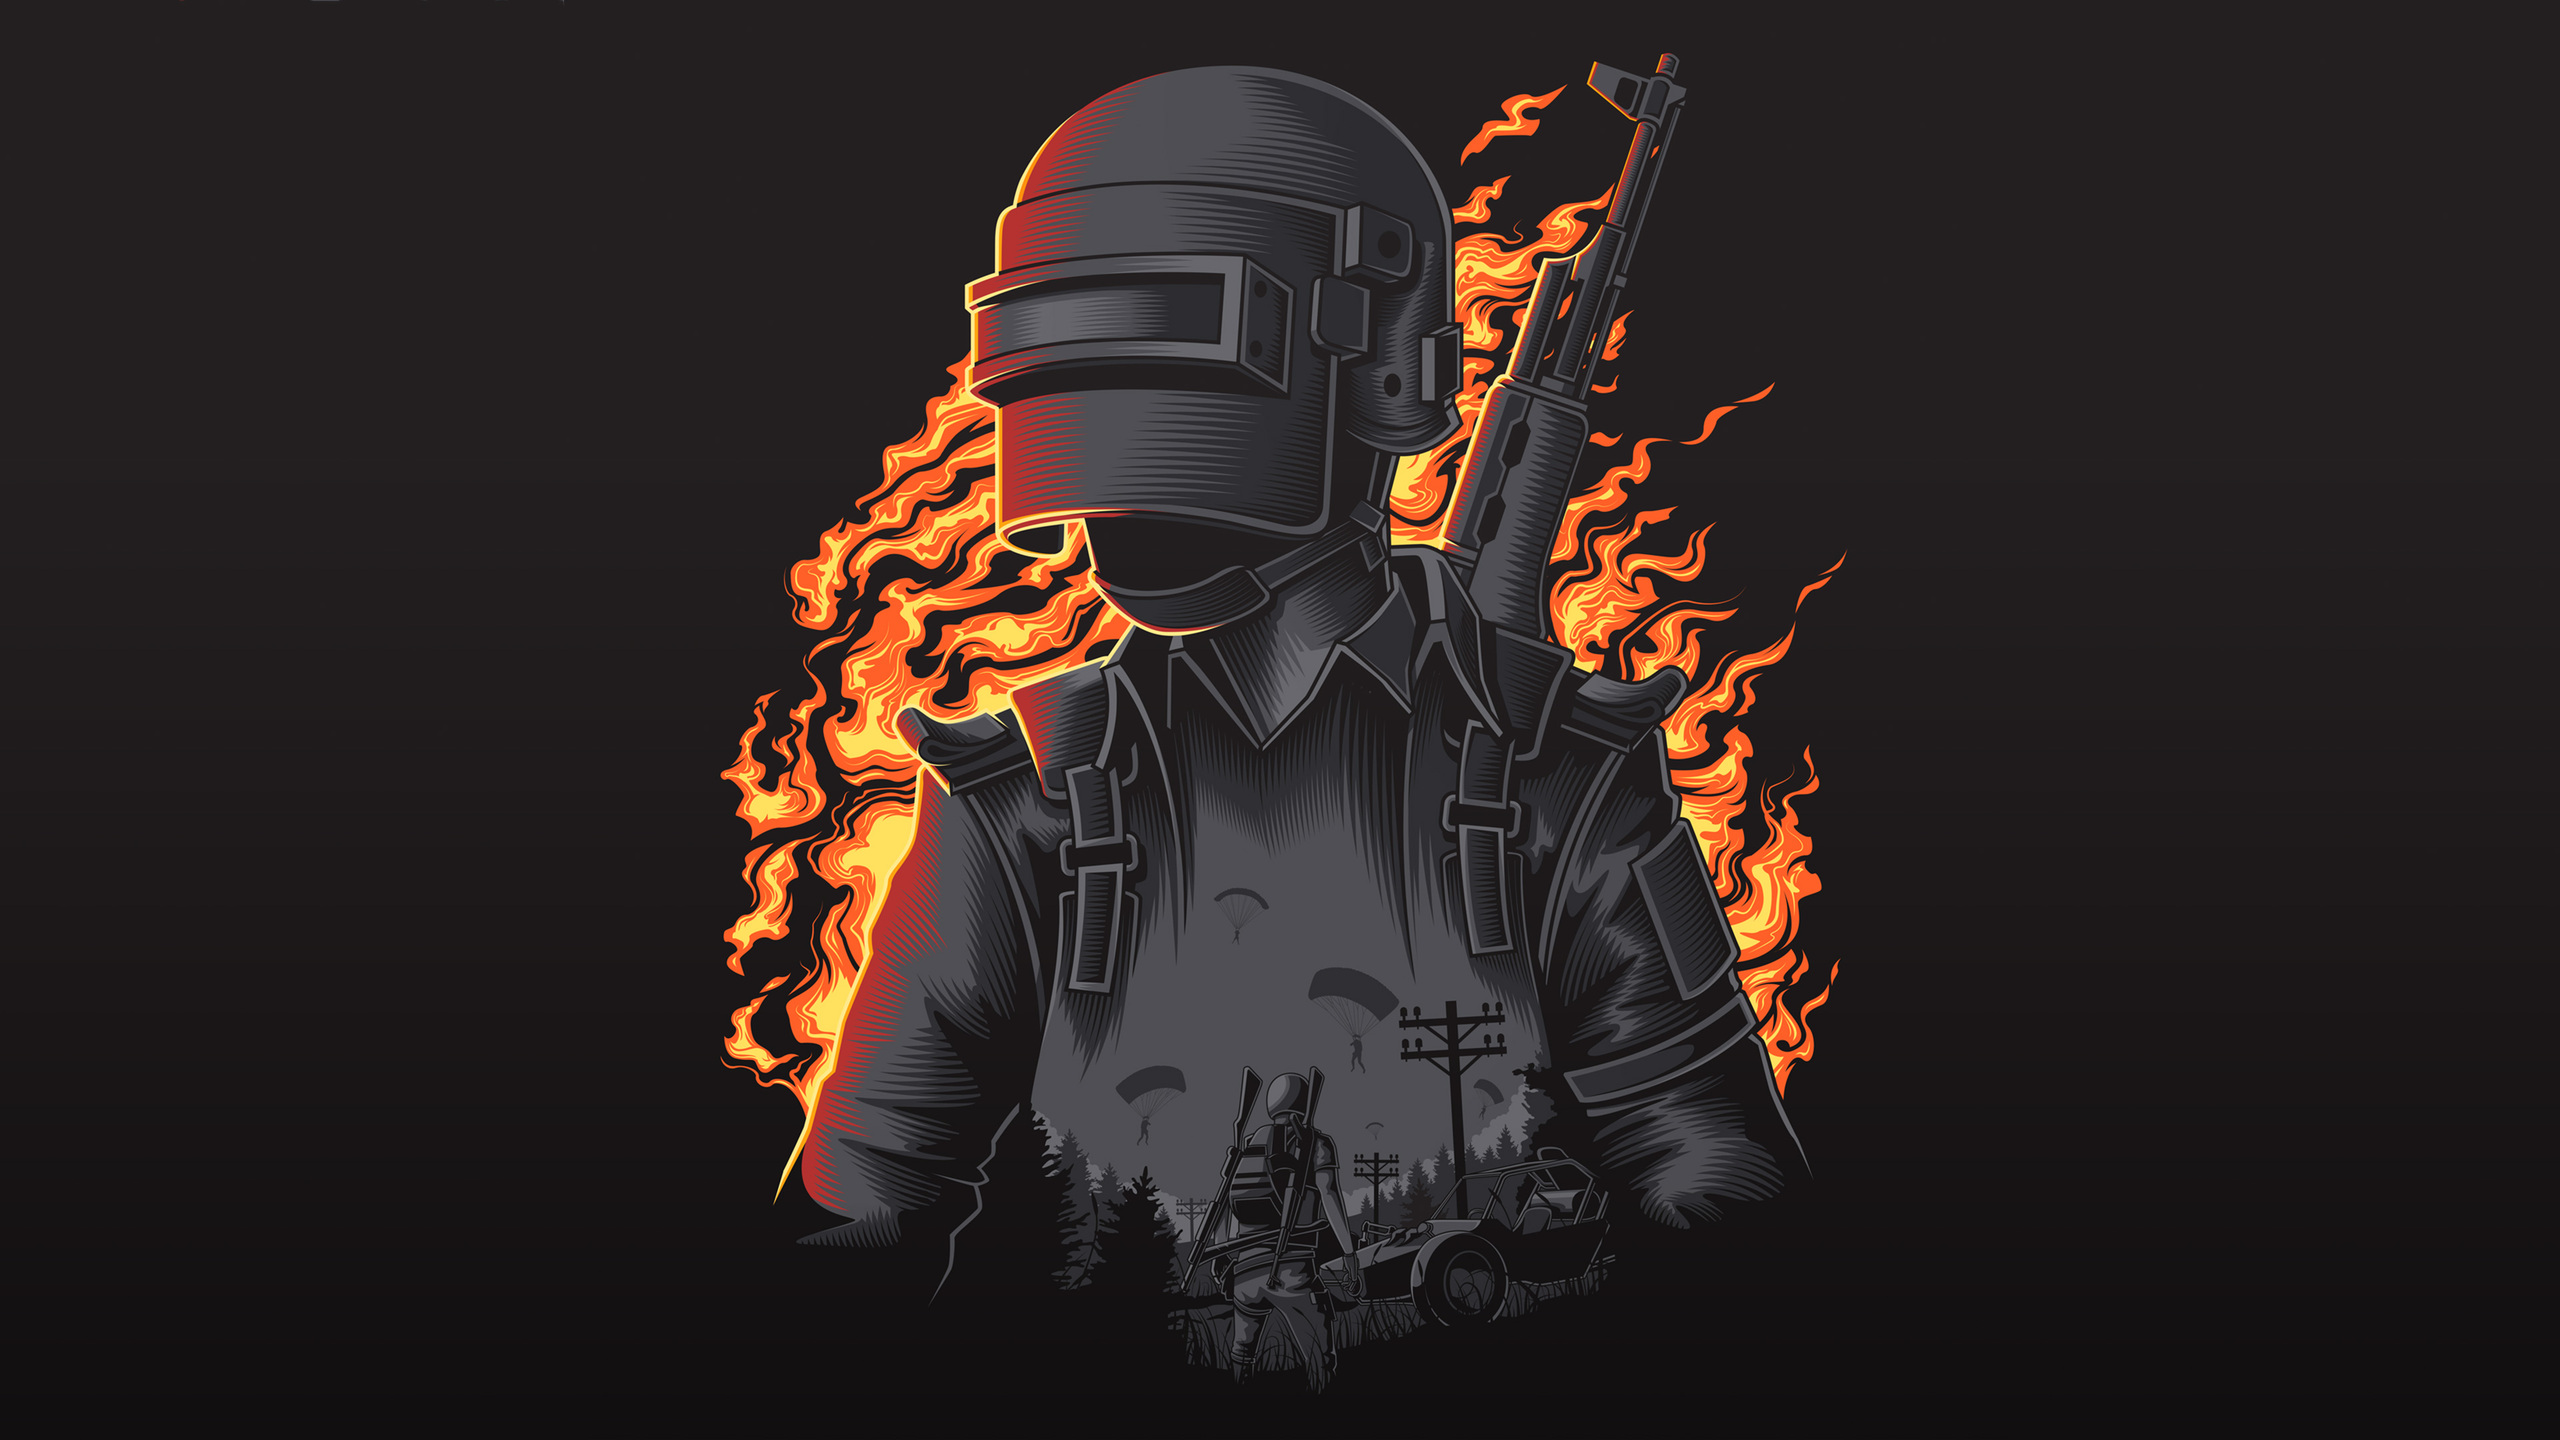 Pubg Black Wallpapers: 2560x1440 Pubg Illustration 4k 1440P Resolution HD 4k